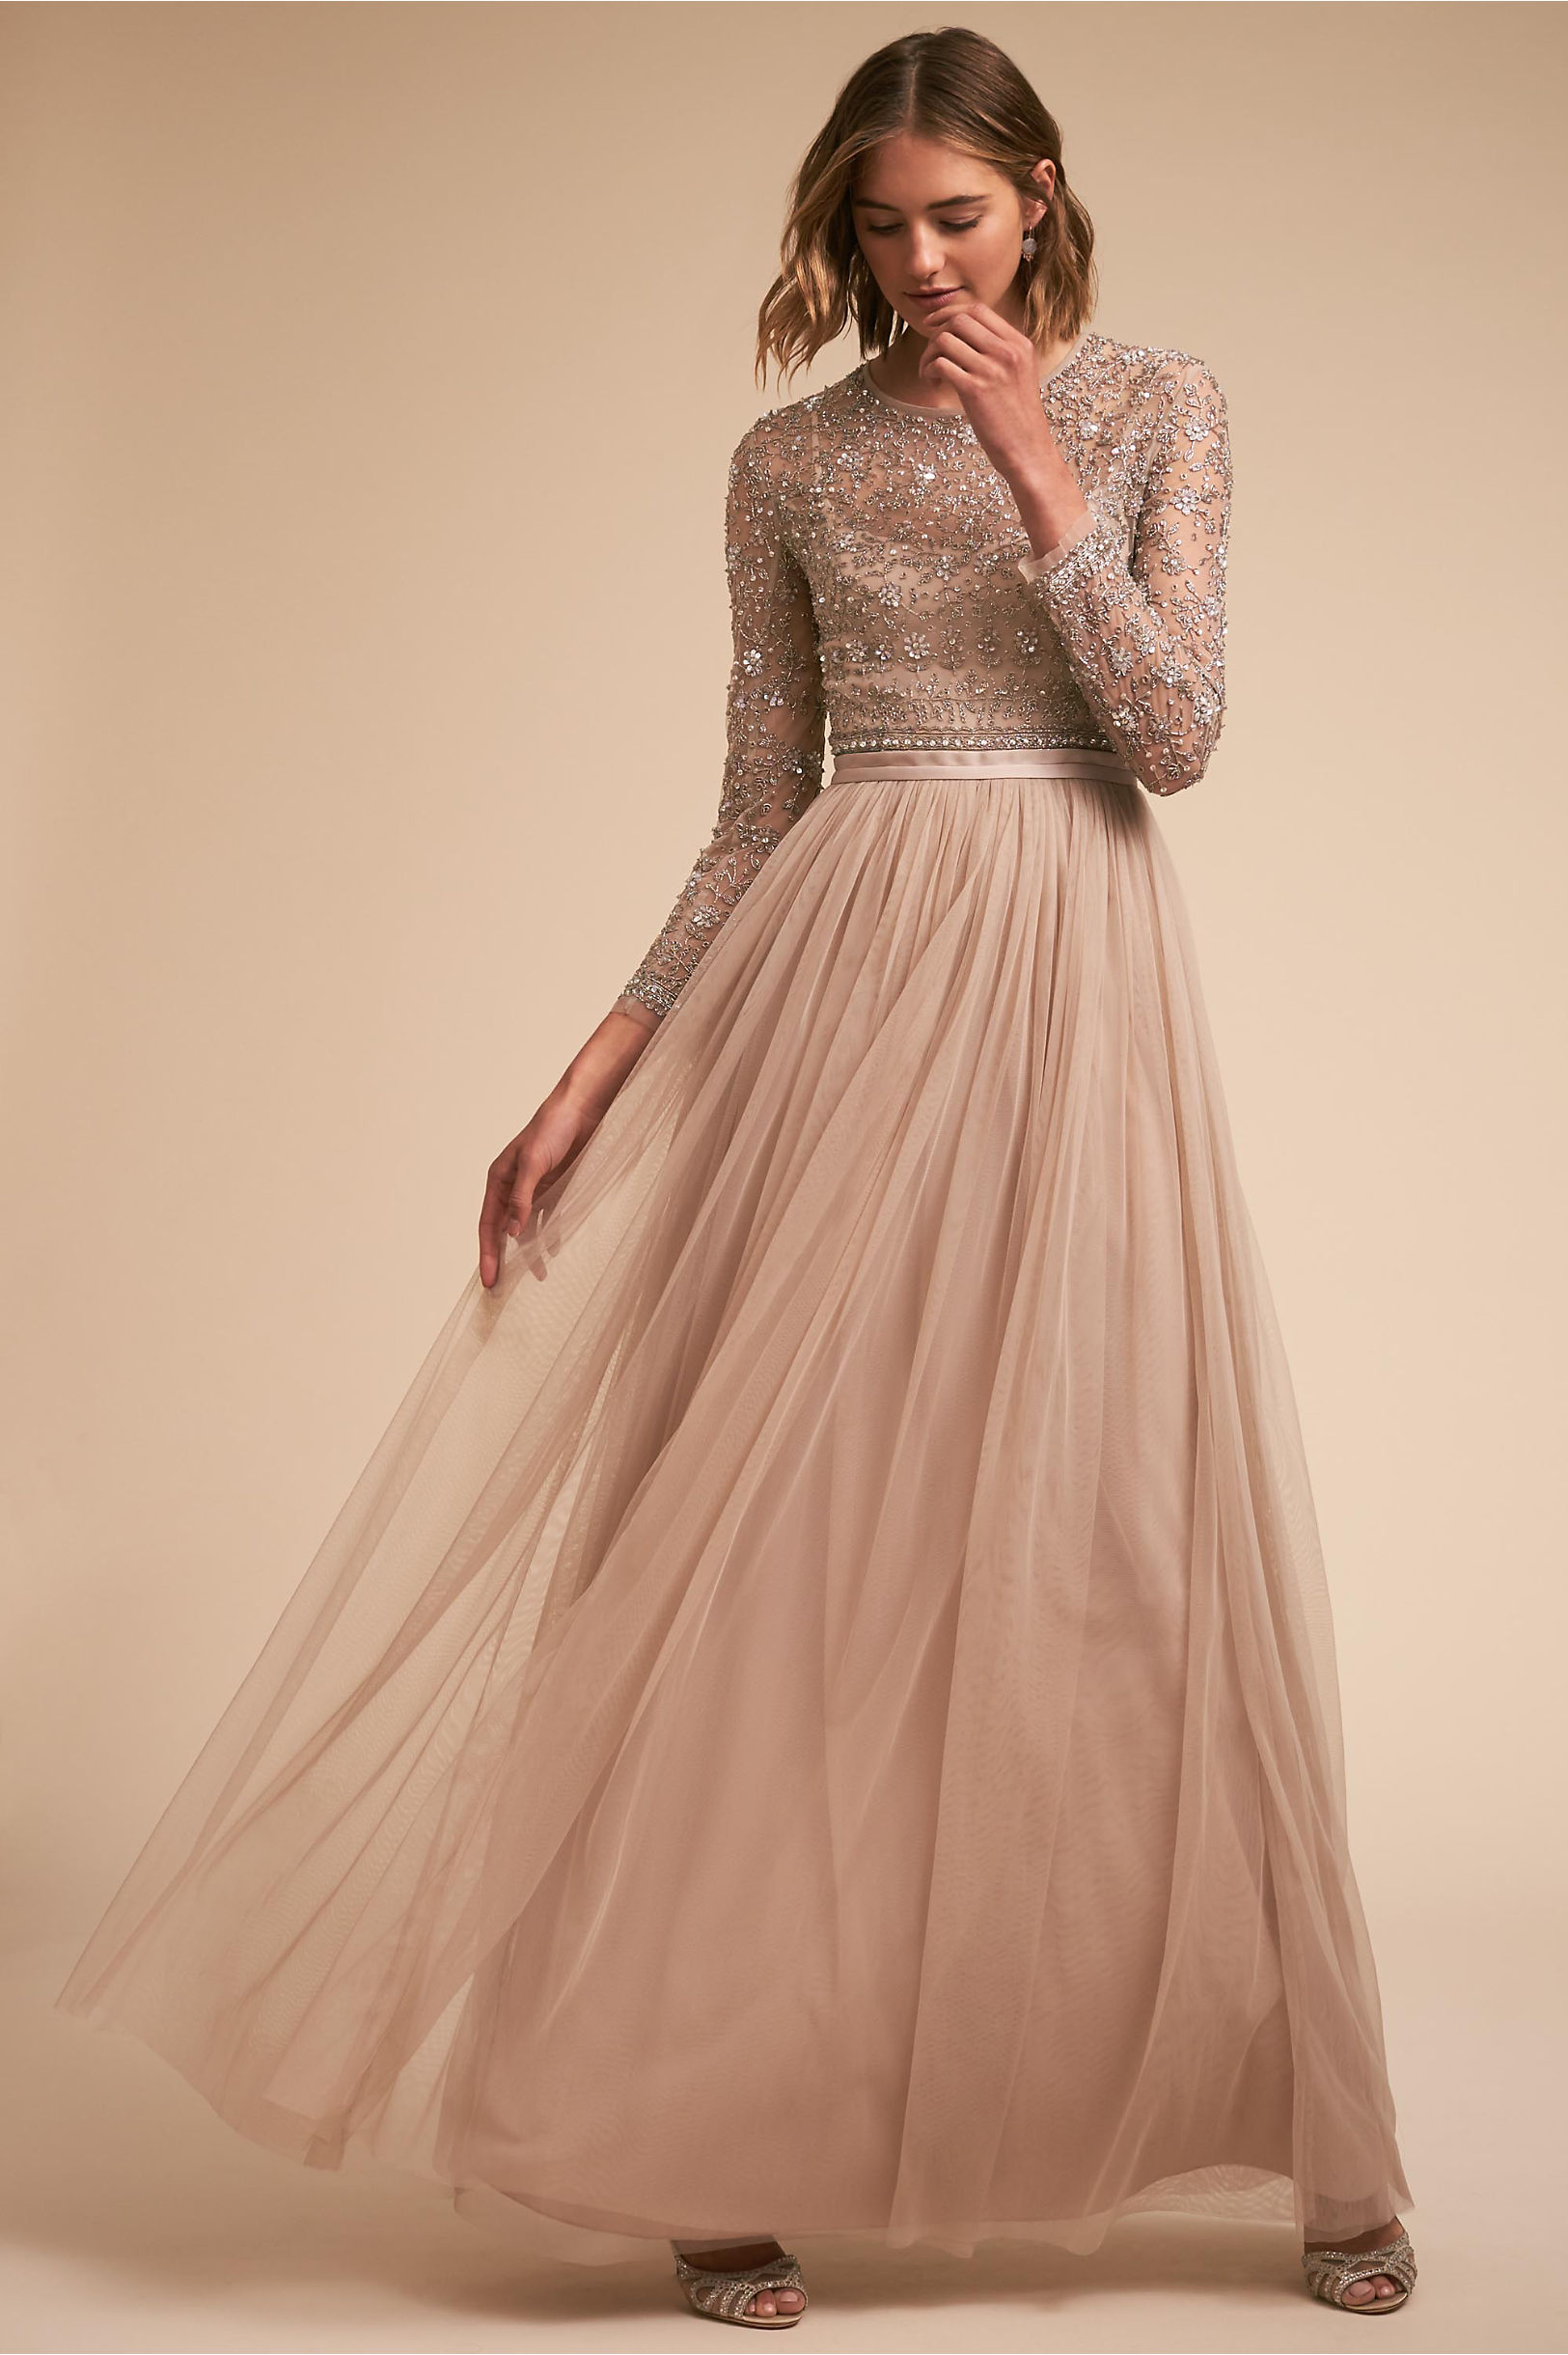 Miramar sparkly long sleeve wedding guest dress idea Needle & Thread BHLDN